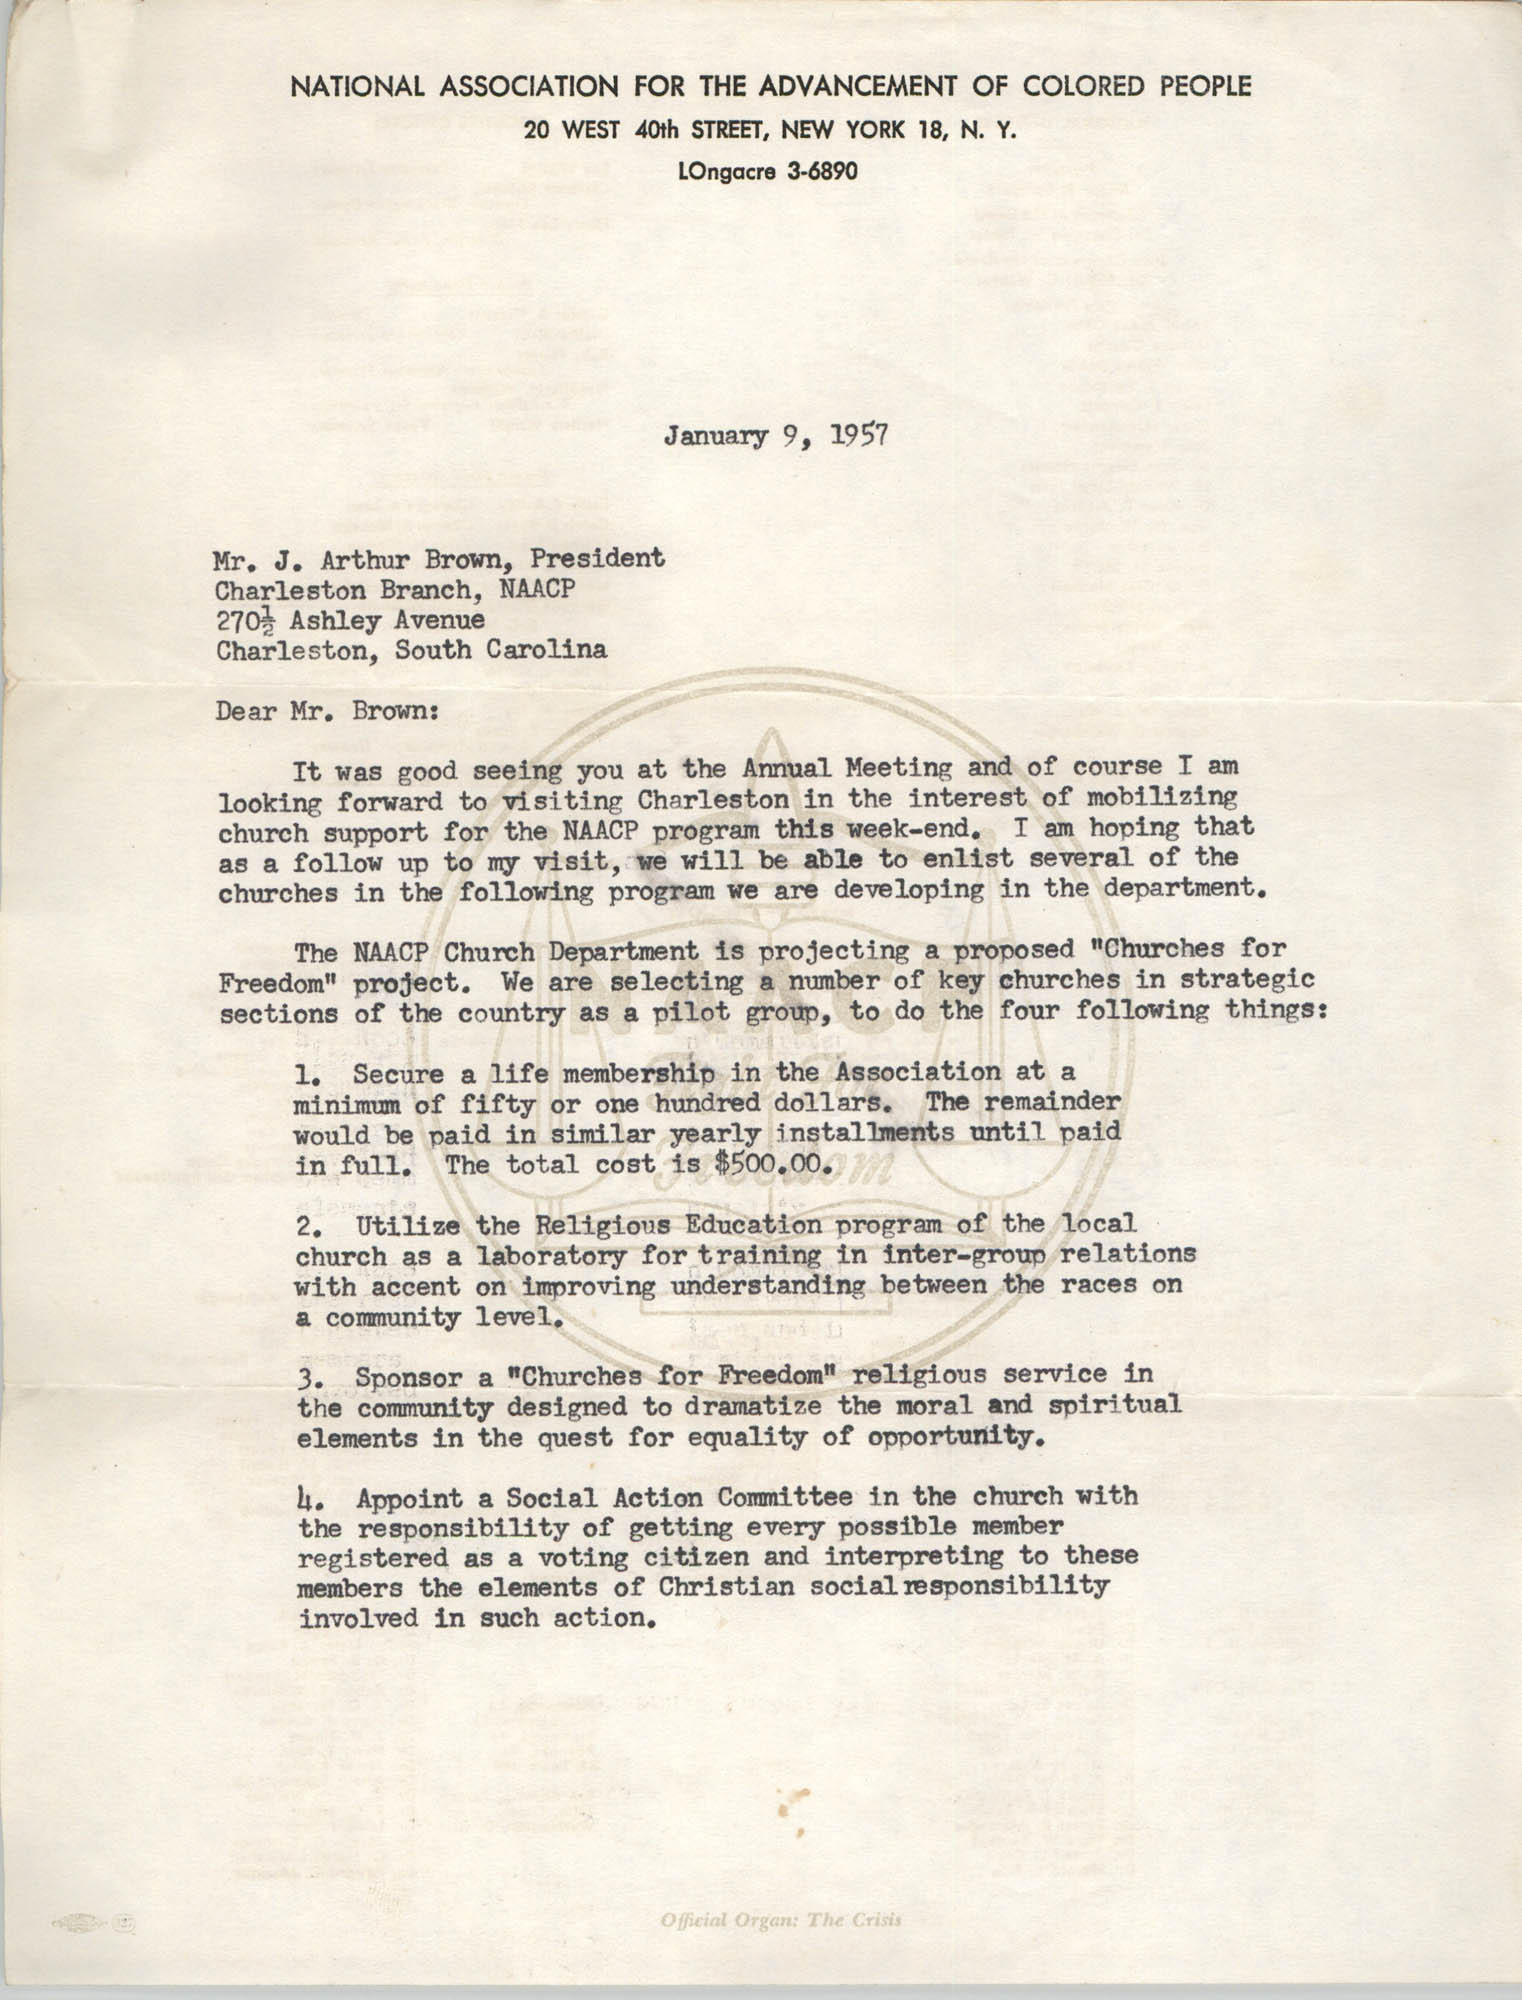 NAACP Memorandum, January 9, 1958